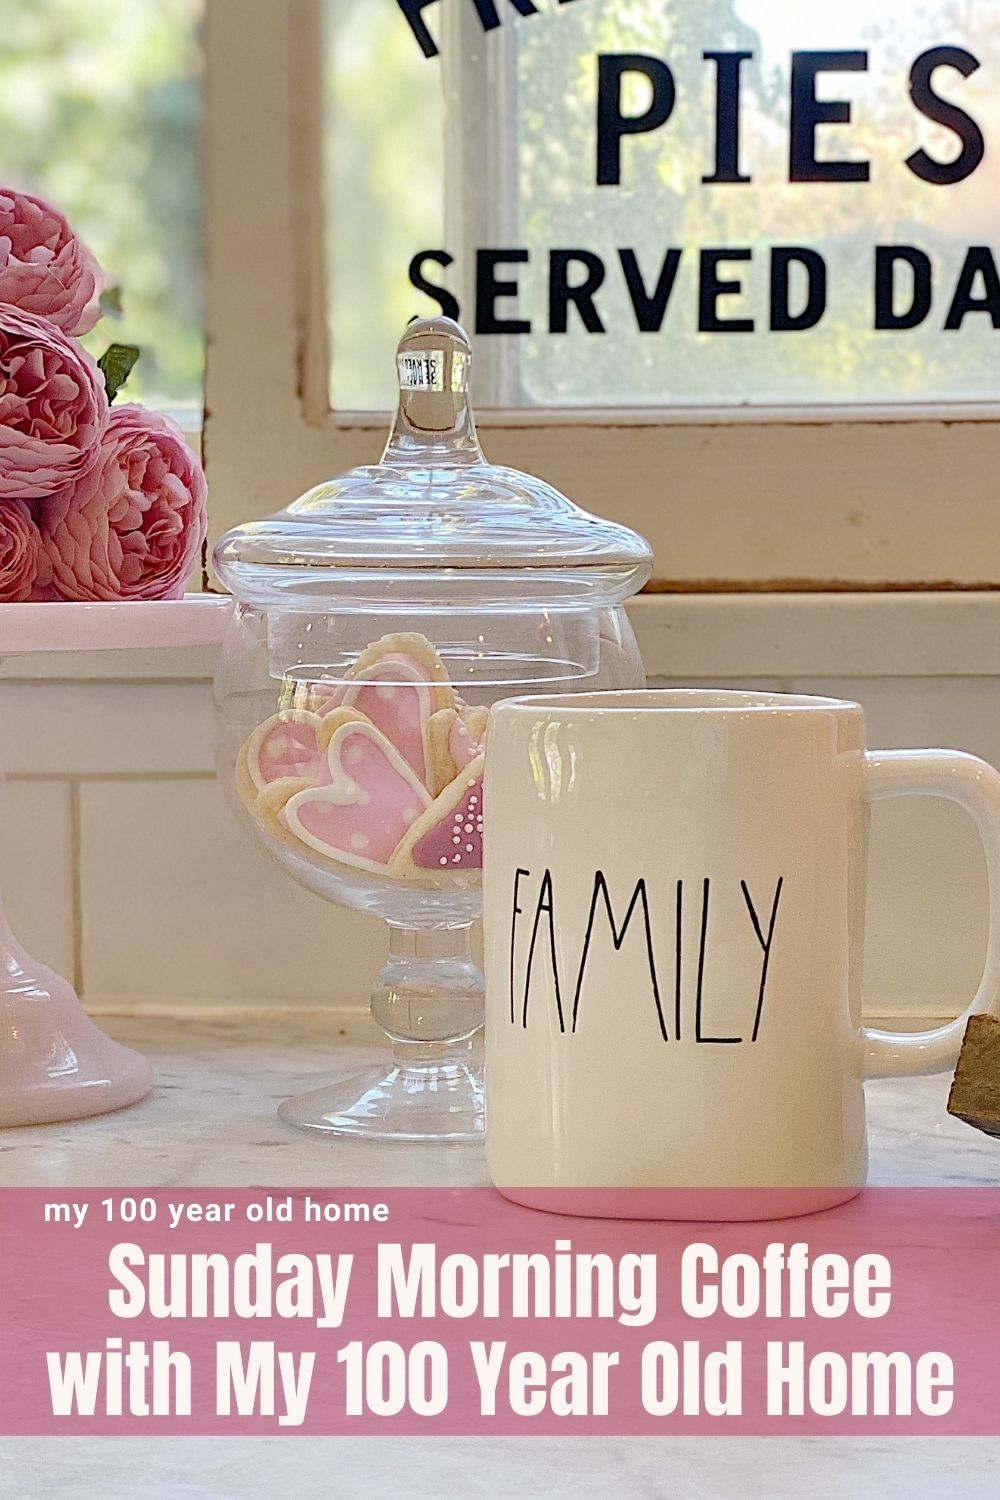 Thanks for joining me for Sunday morning coffee. Today I am sharing my weekly thoughts about entertaining, decor, crafts, recipes, and my theme for February ... Living Beautifully.